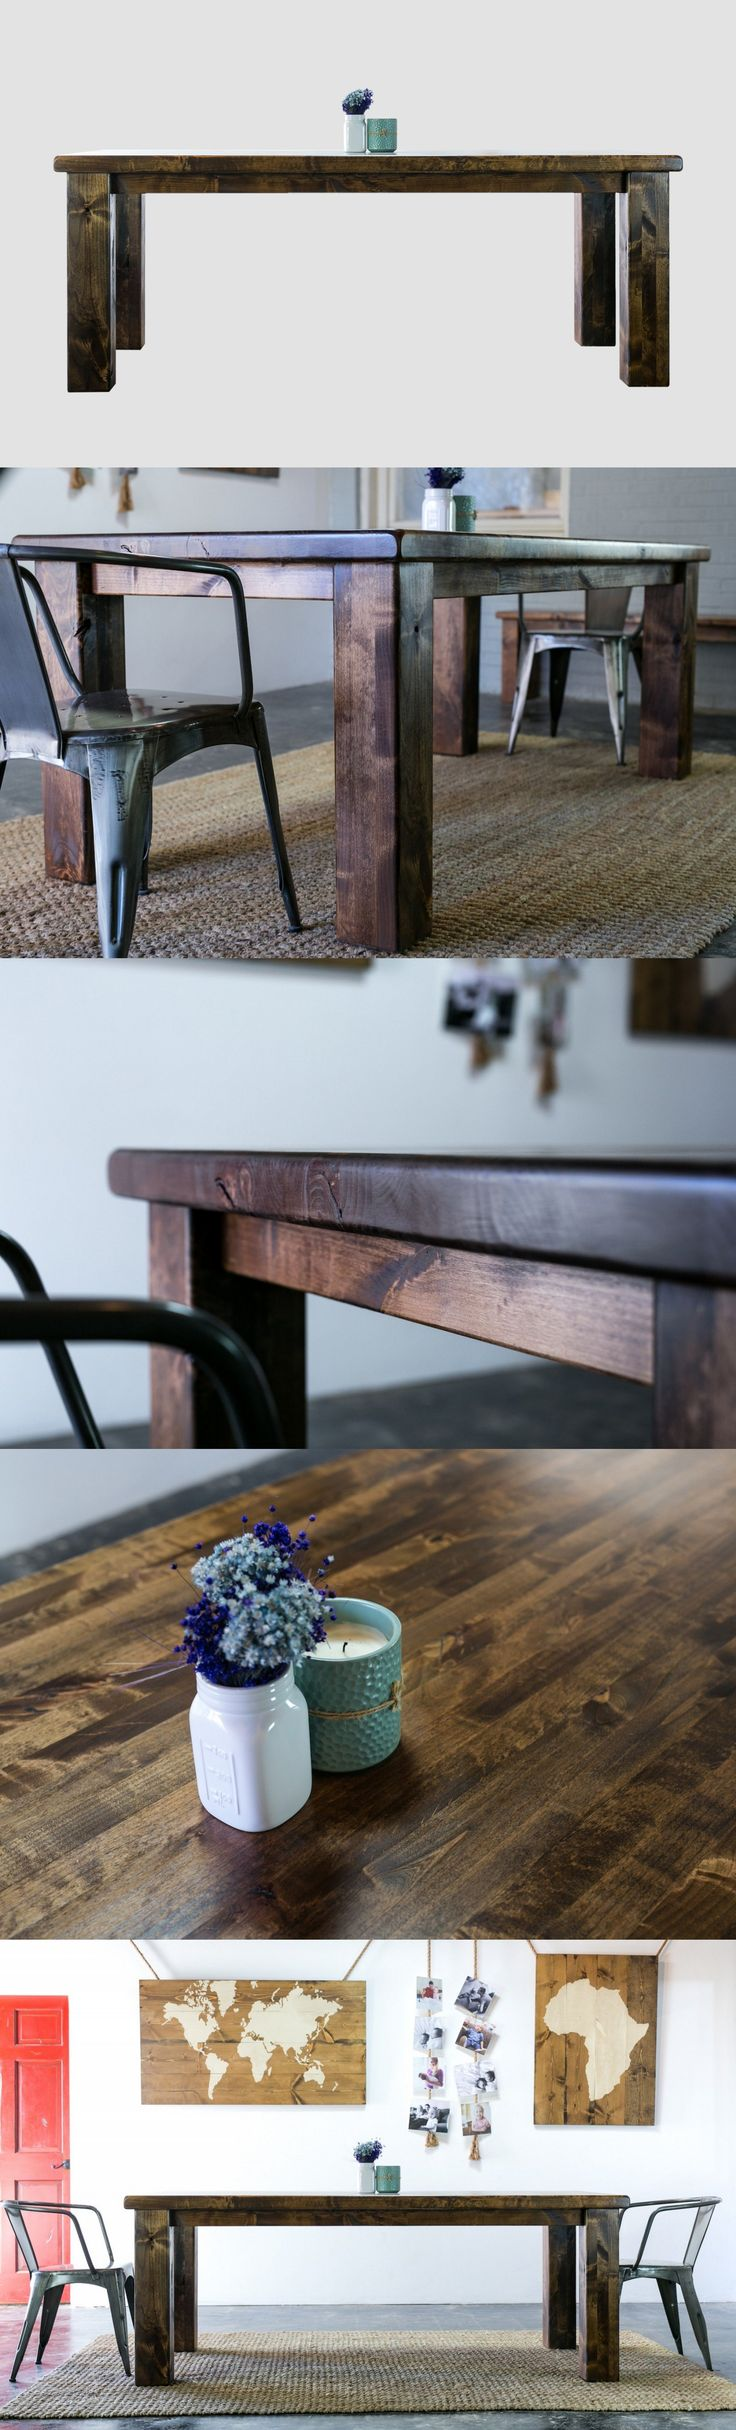 Named after the famous breed of draught horse found in Scotland, our table is also beautifully oversized and built for strength. A full 2-1/4″ butcher block top sits above 5-1/2″ solid wood legs. Please note: this table is not easy to move.